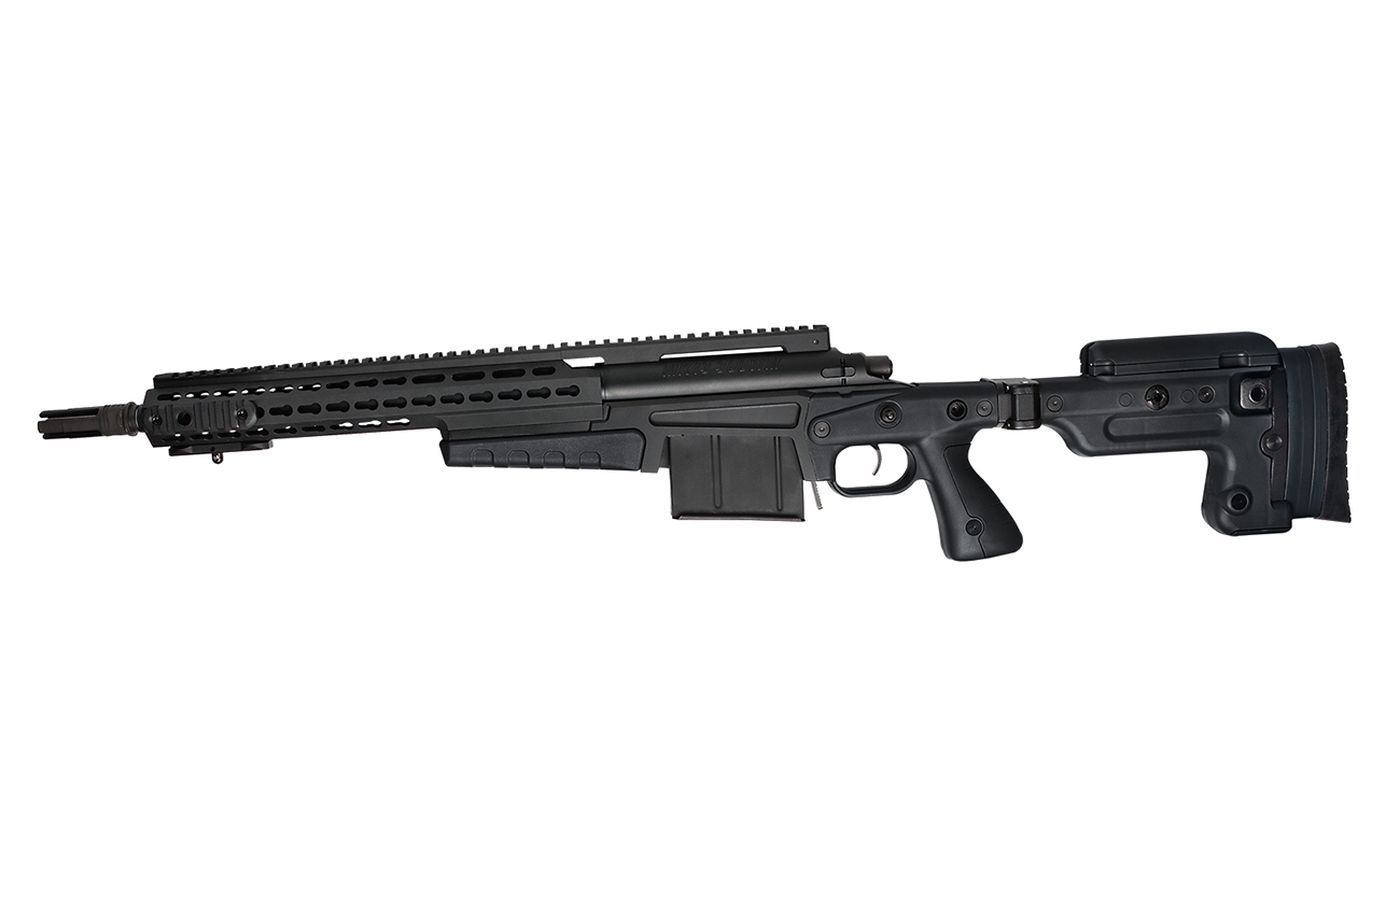 Sniper Airsoft Spring Accuracy International MK13 Compact Black